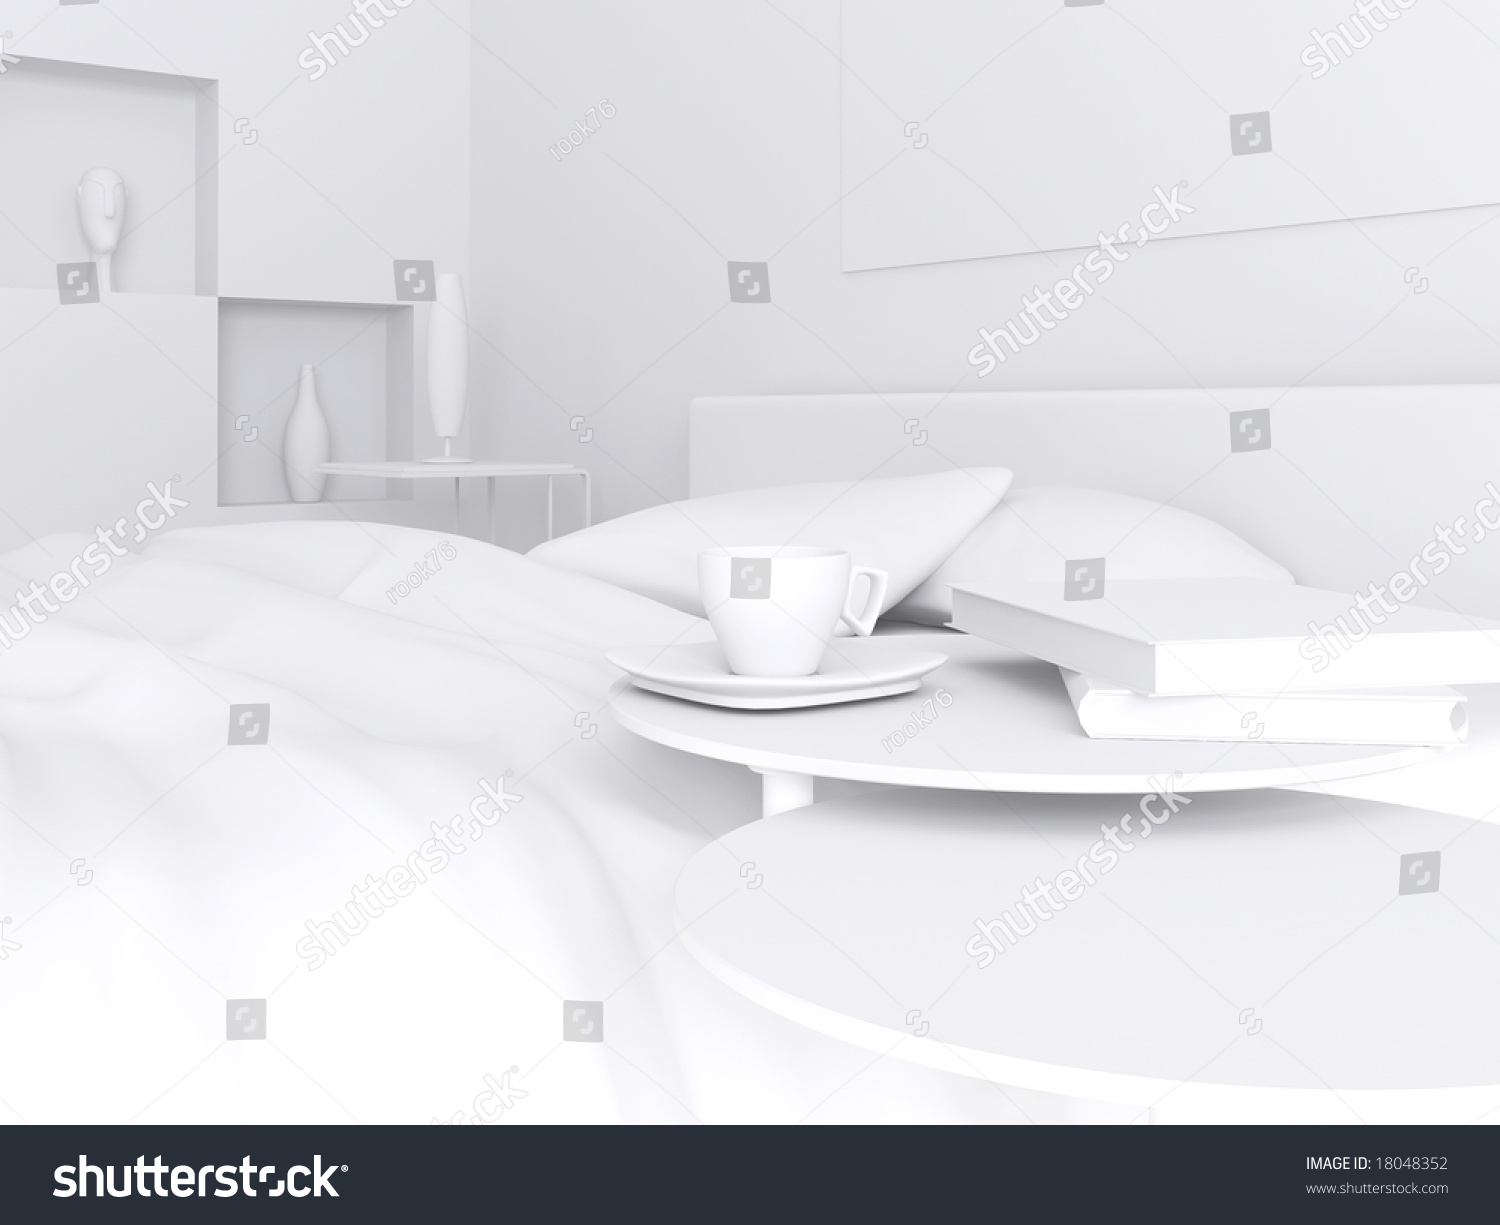 High Resolution Image Interior A Bed In A Bedroom 3d